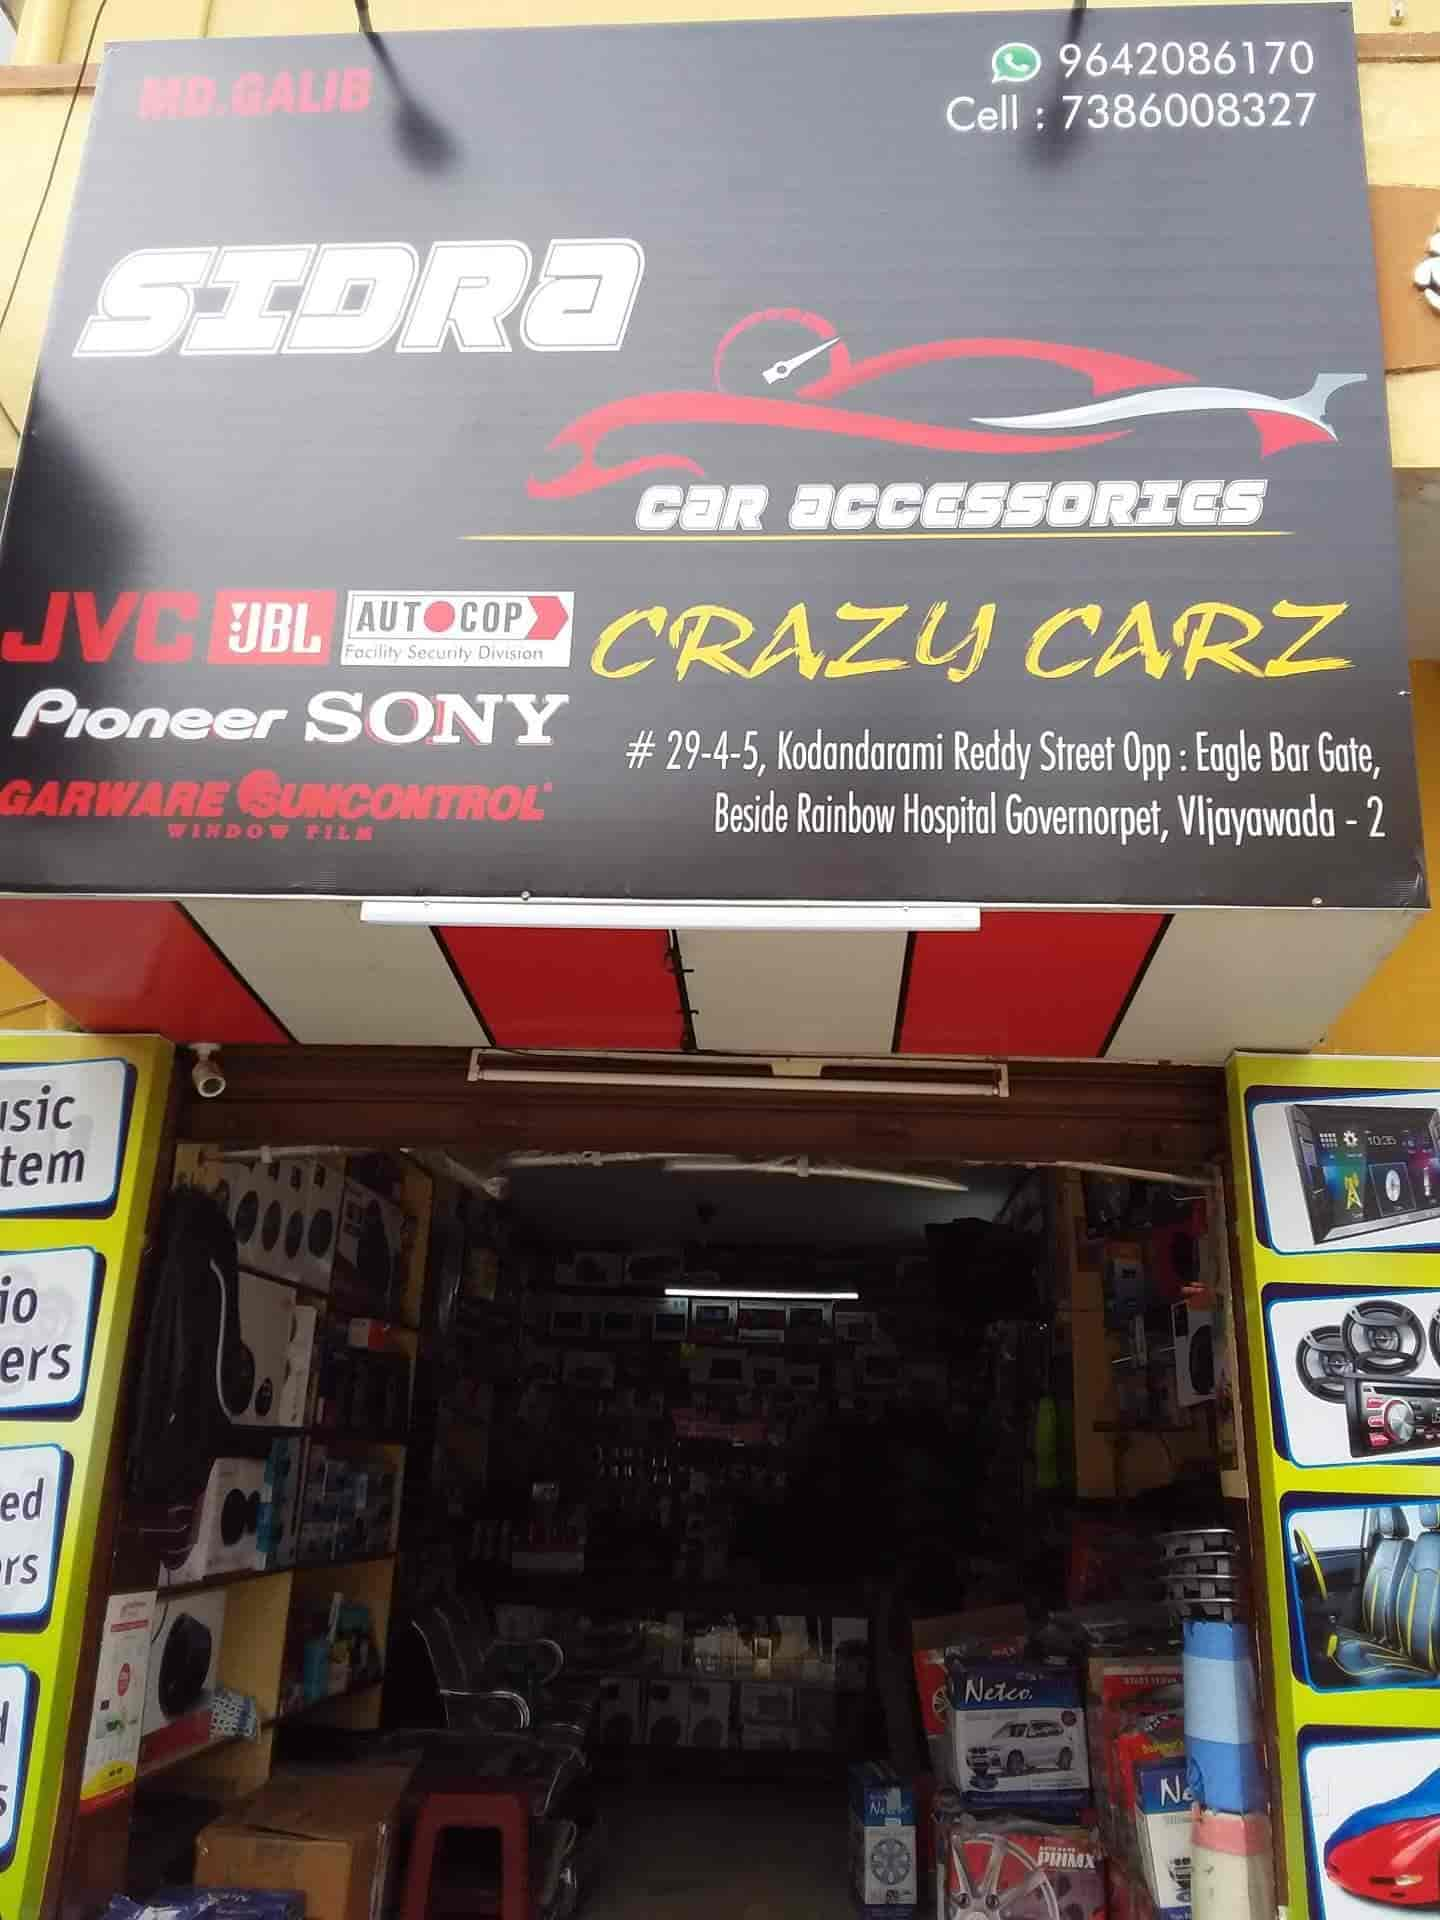 Sidra Car Accessories, Governerpet - Car Accessory Dealers